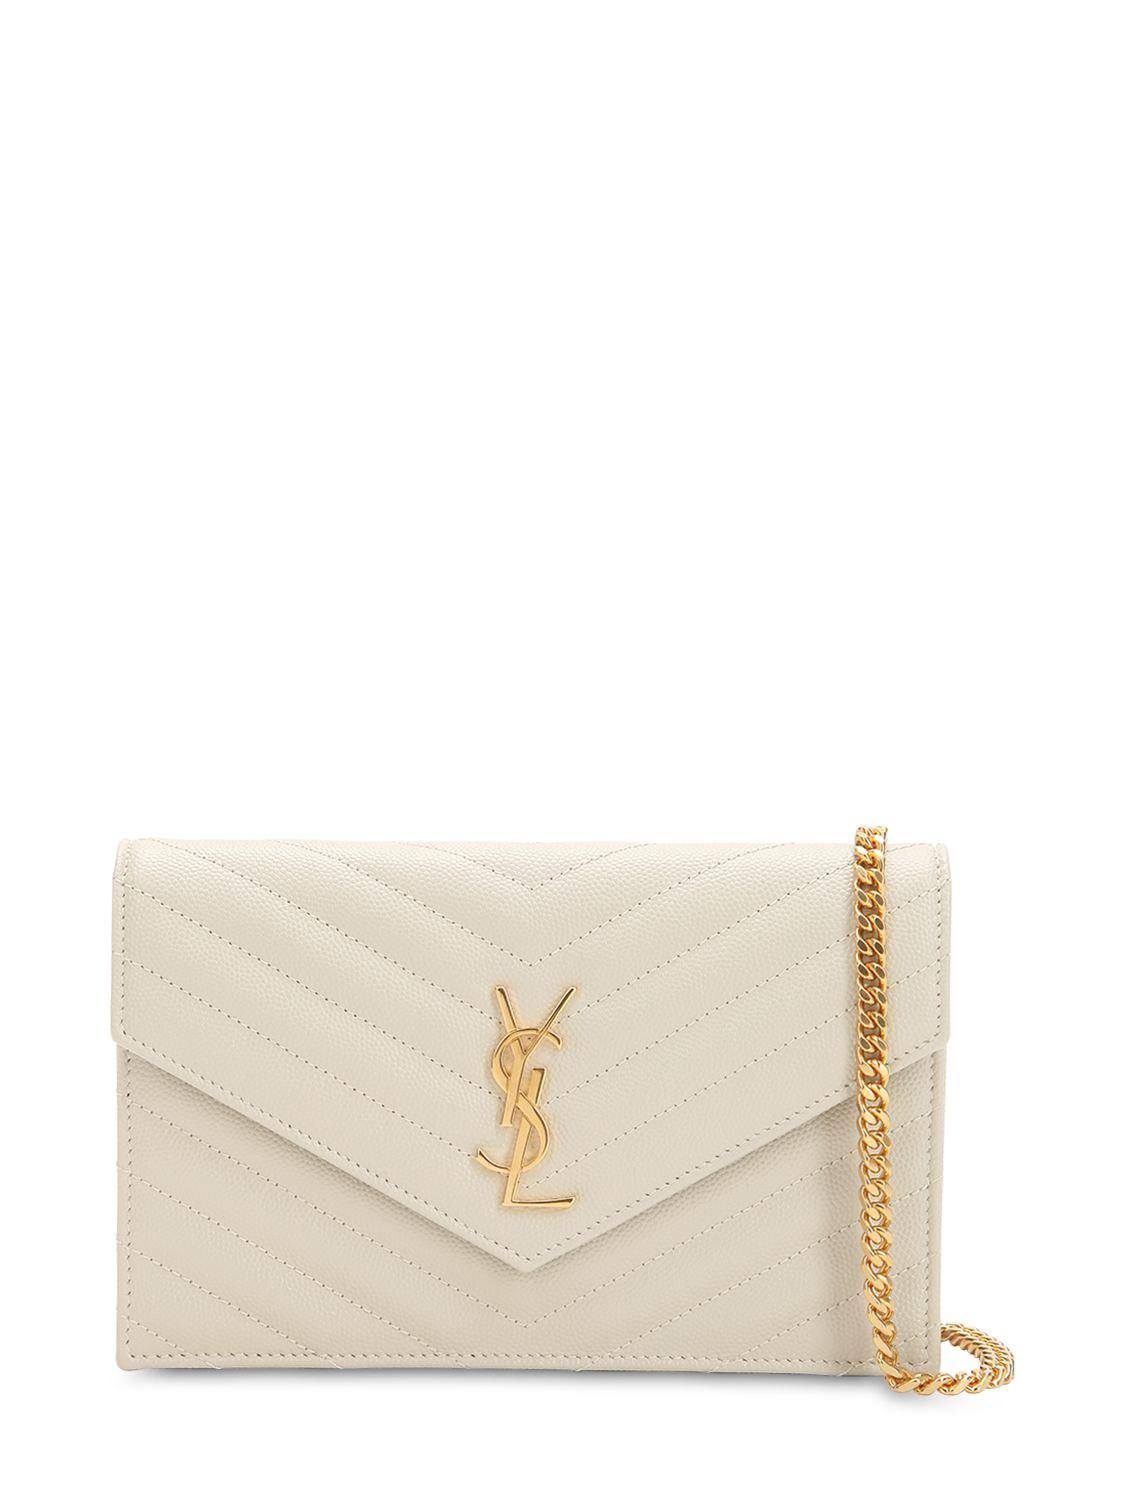 eb66b6abb162 Lyst - Saint Laurent Small Quilted Monogram Leather Bag in White